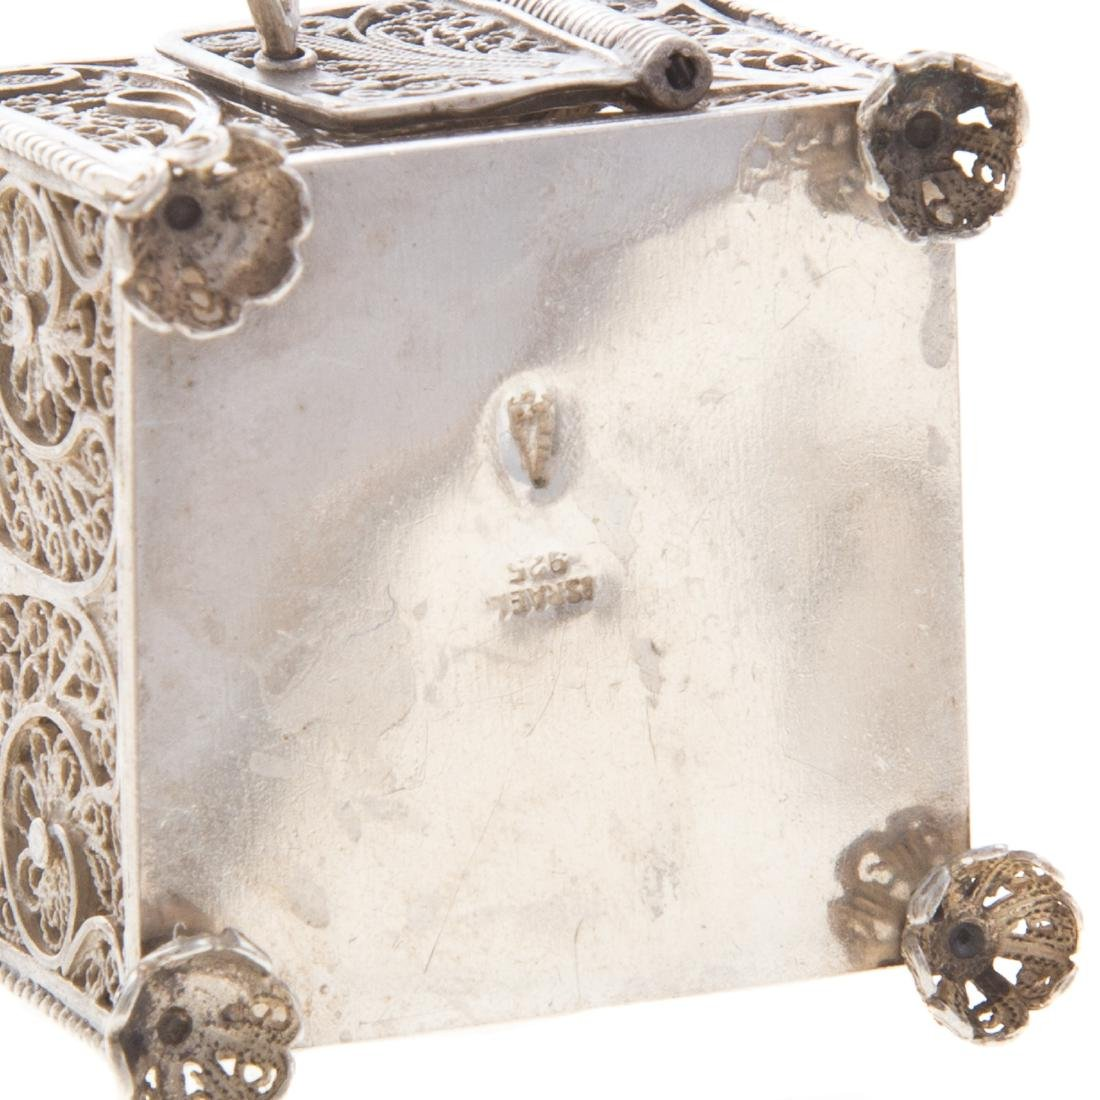 Collection Judaica sterling filigree ritual items - 6